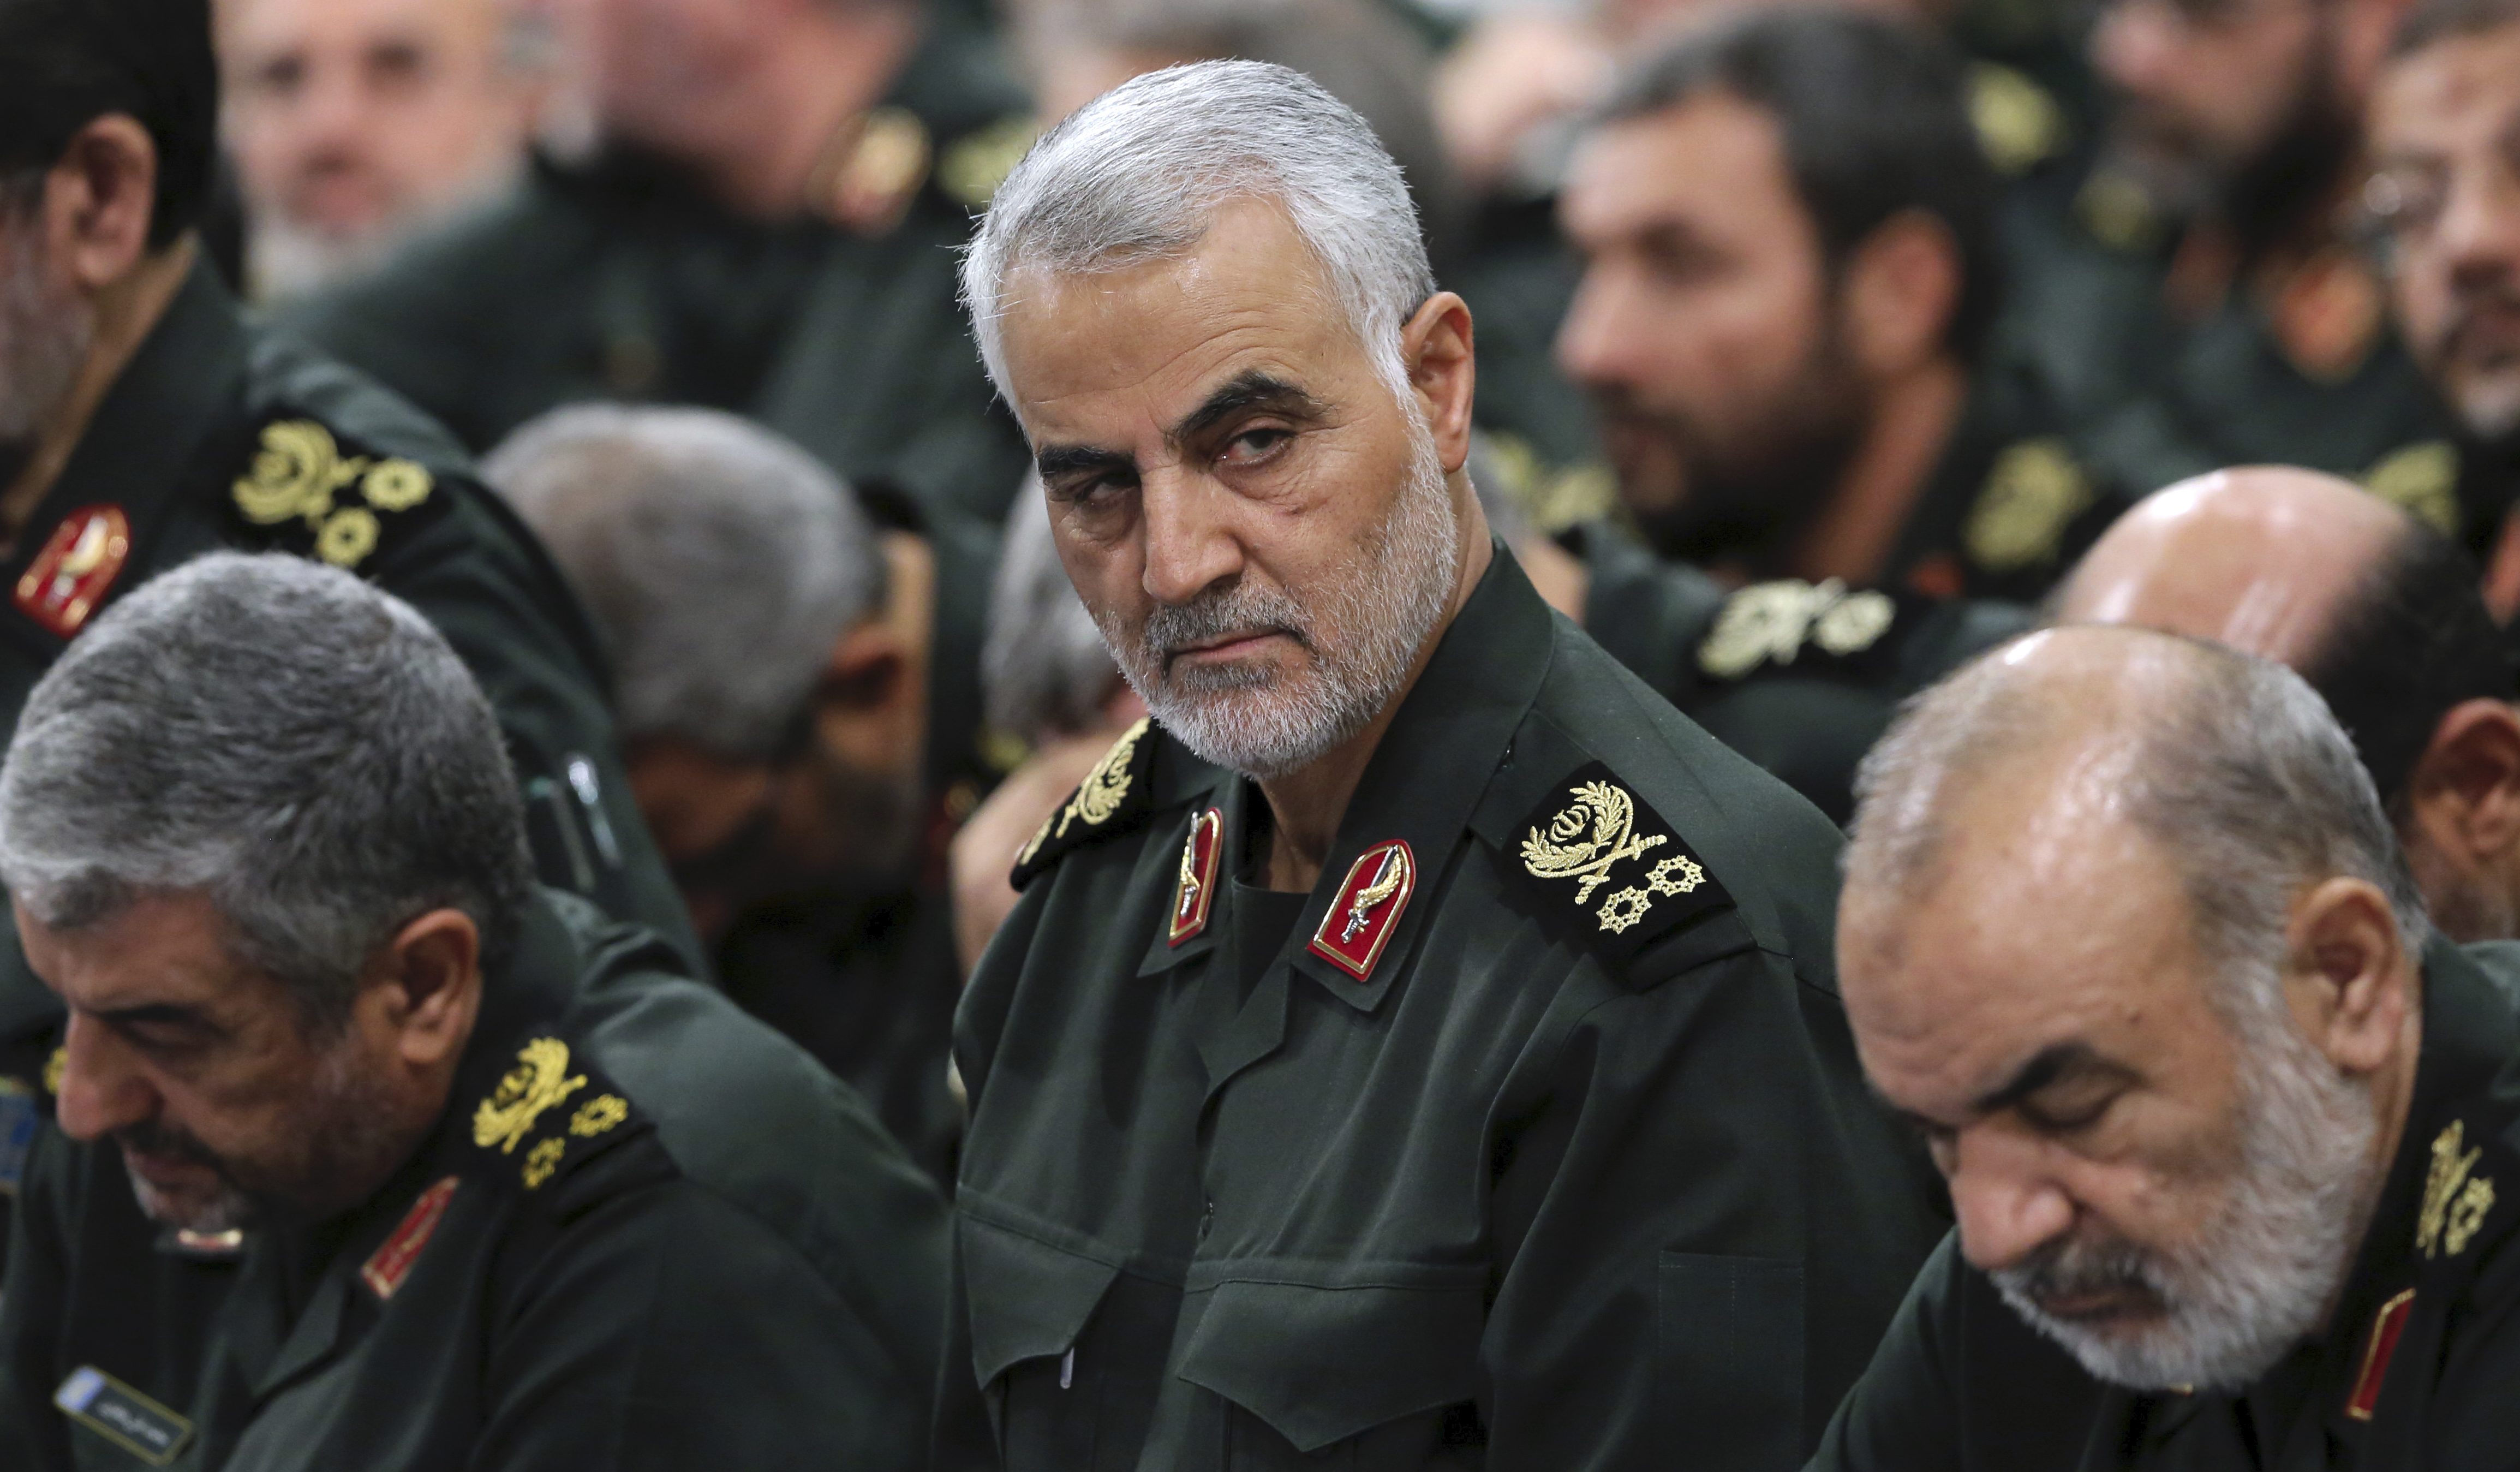 In this Sept. 18, 2016 photo, Revolutionary Guard Gen. Qassem Soleimani, center, attends a meeting with Supreme Leader Ayatollah Ali Khamenei and Revolutionary Guard commanders in Tehran, Iran.